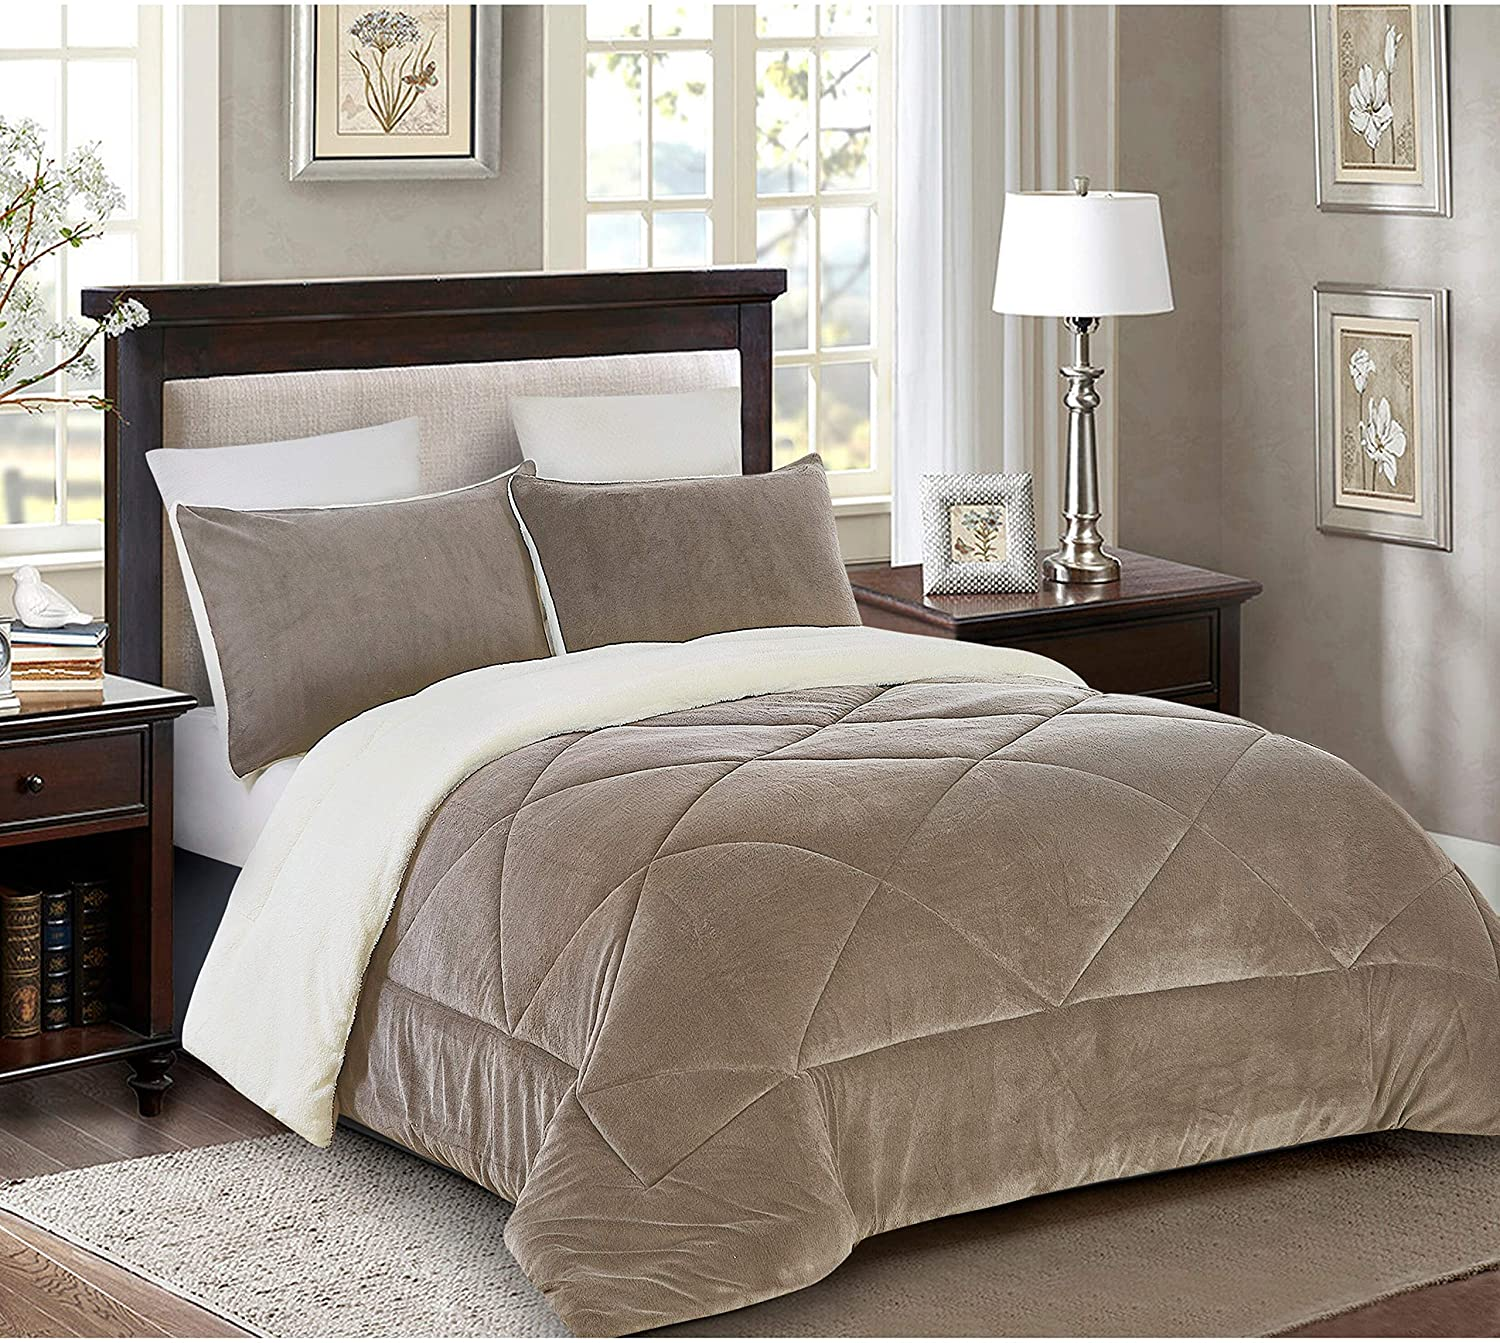 2 Piece Fleece/Sherpa Down Alternative Comforter Set Twin Taupe Brown Solid Color Microfiber